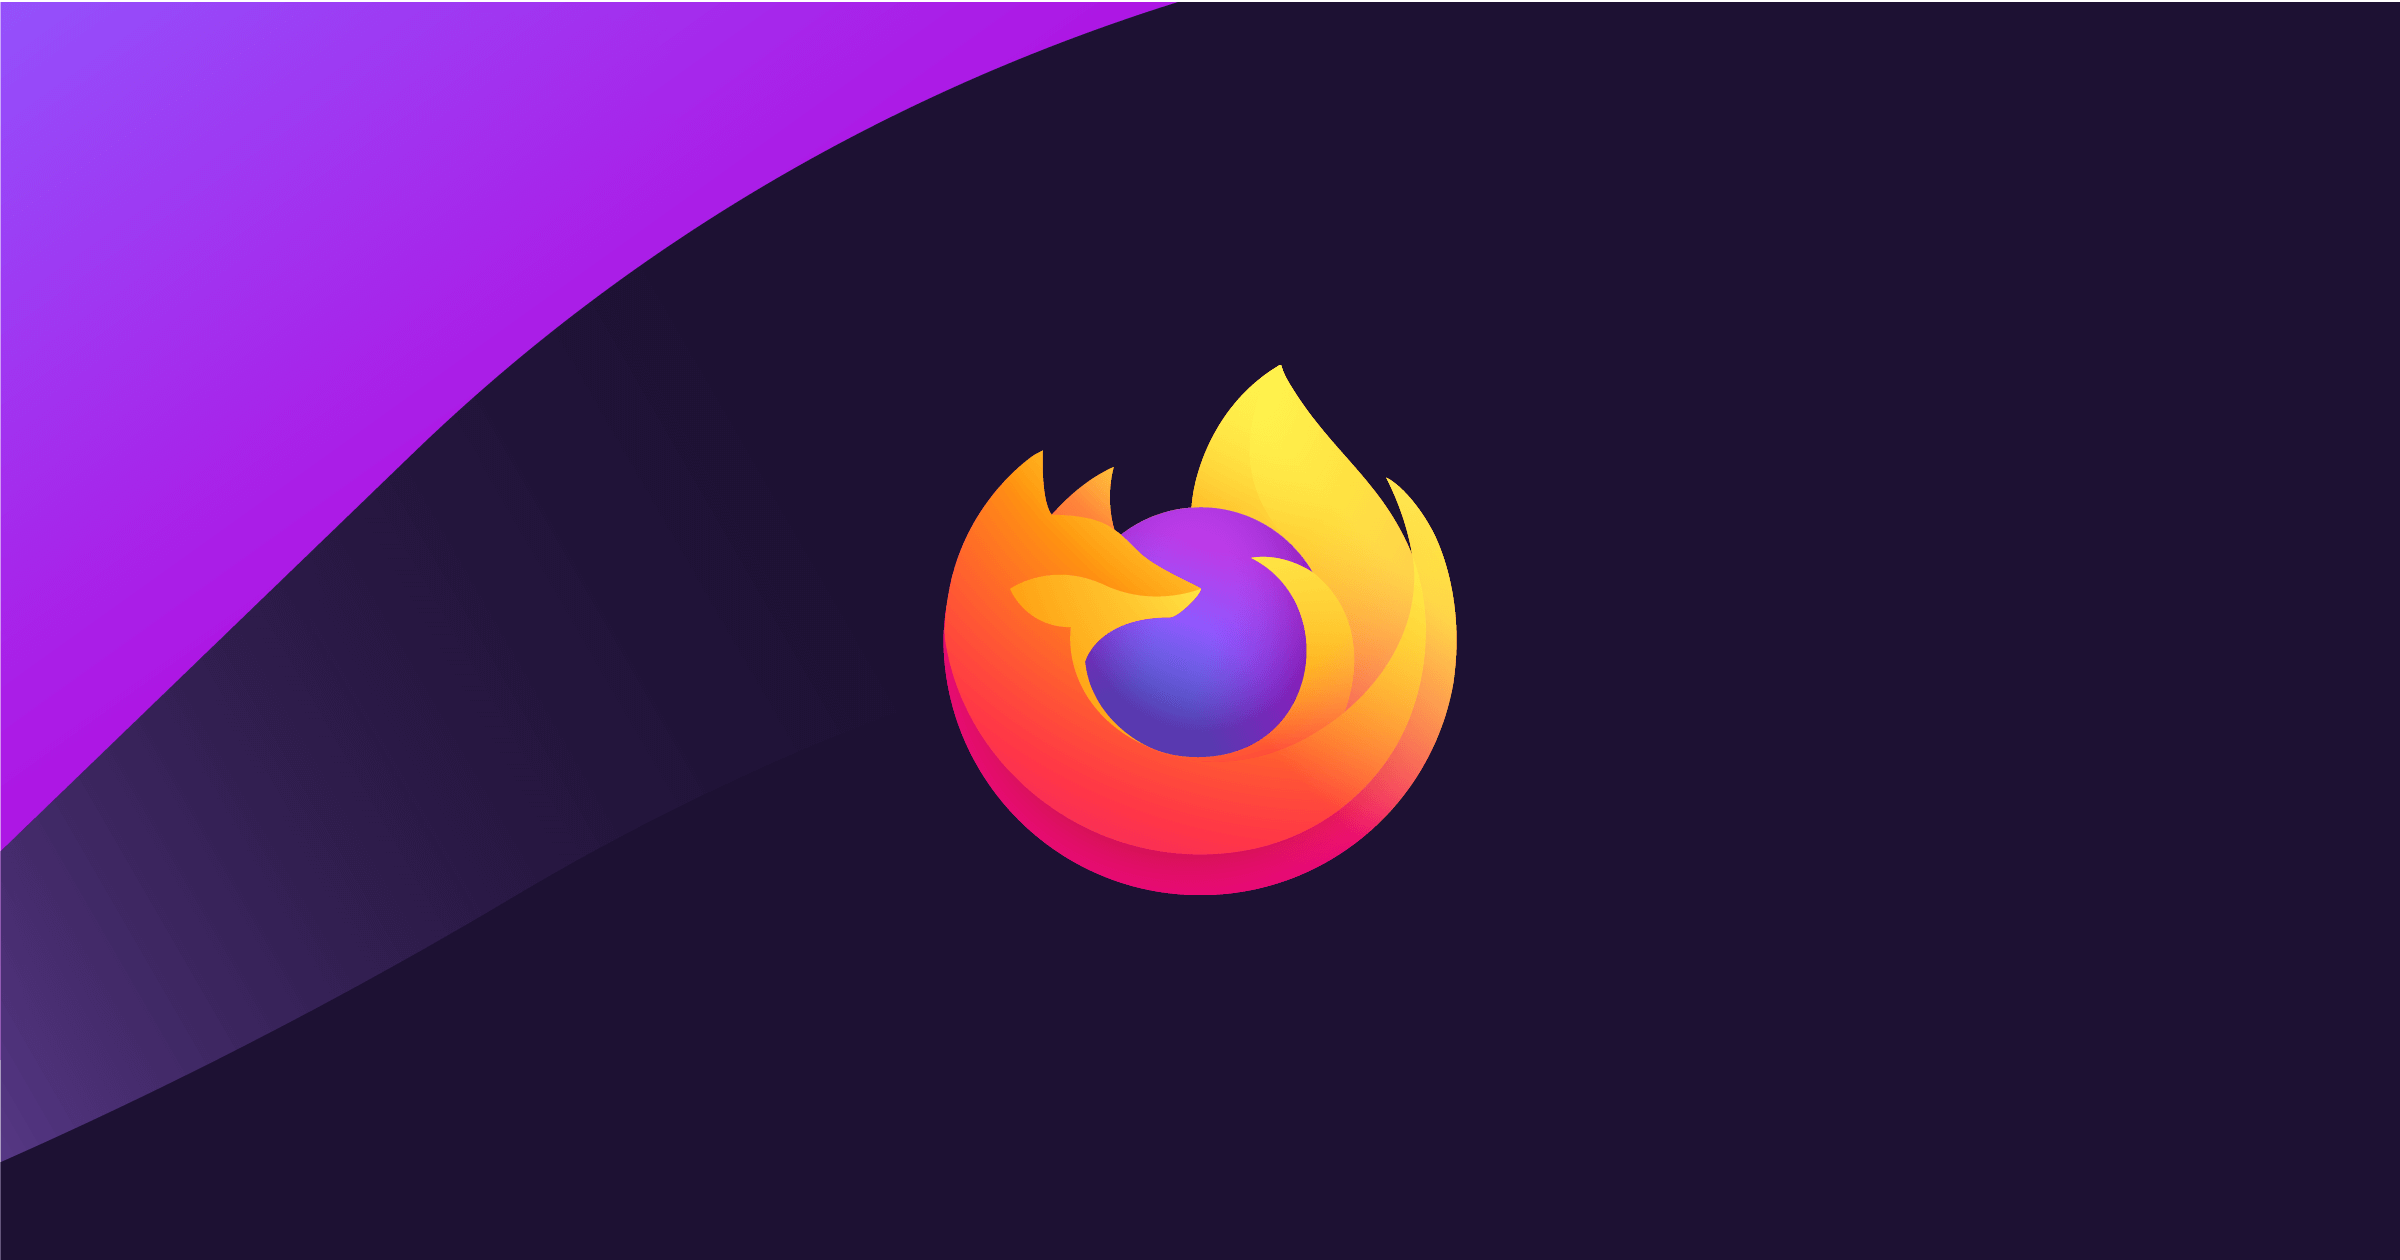 Firefox 84 December 2020 ends Flash